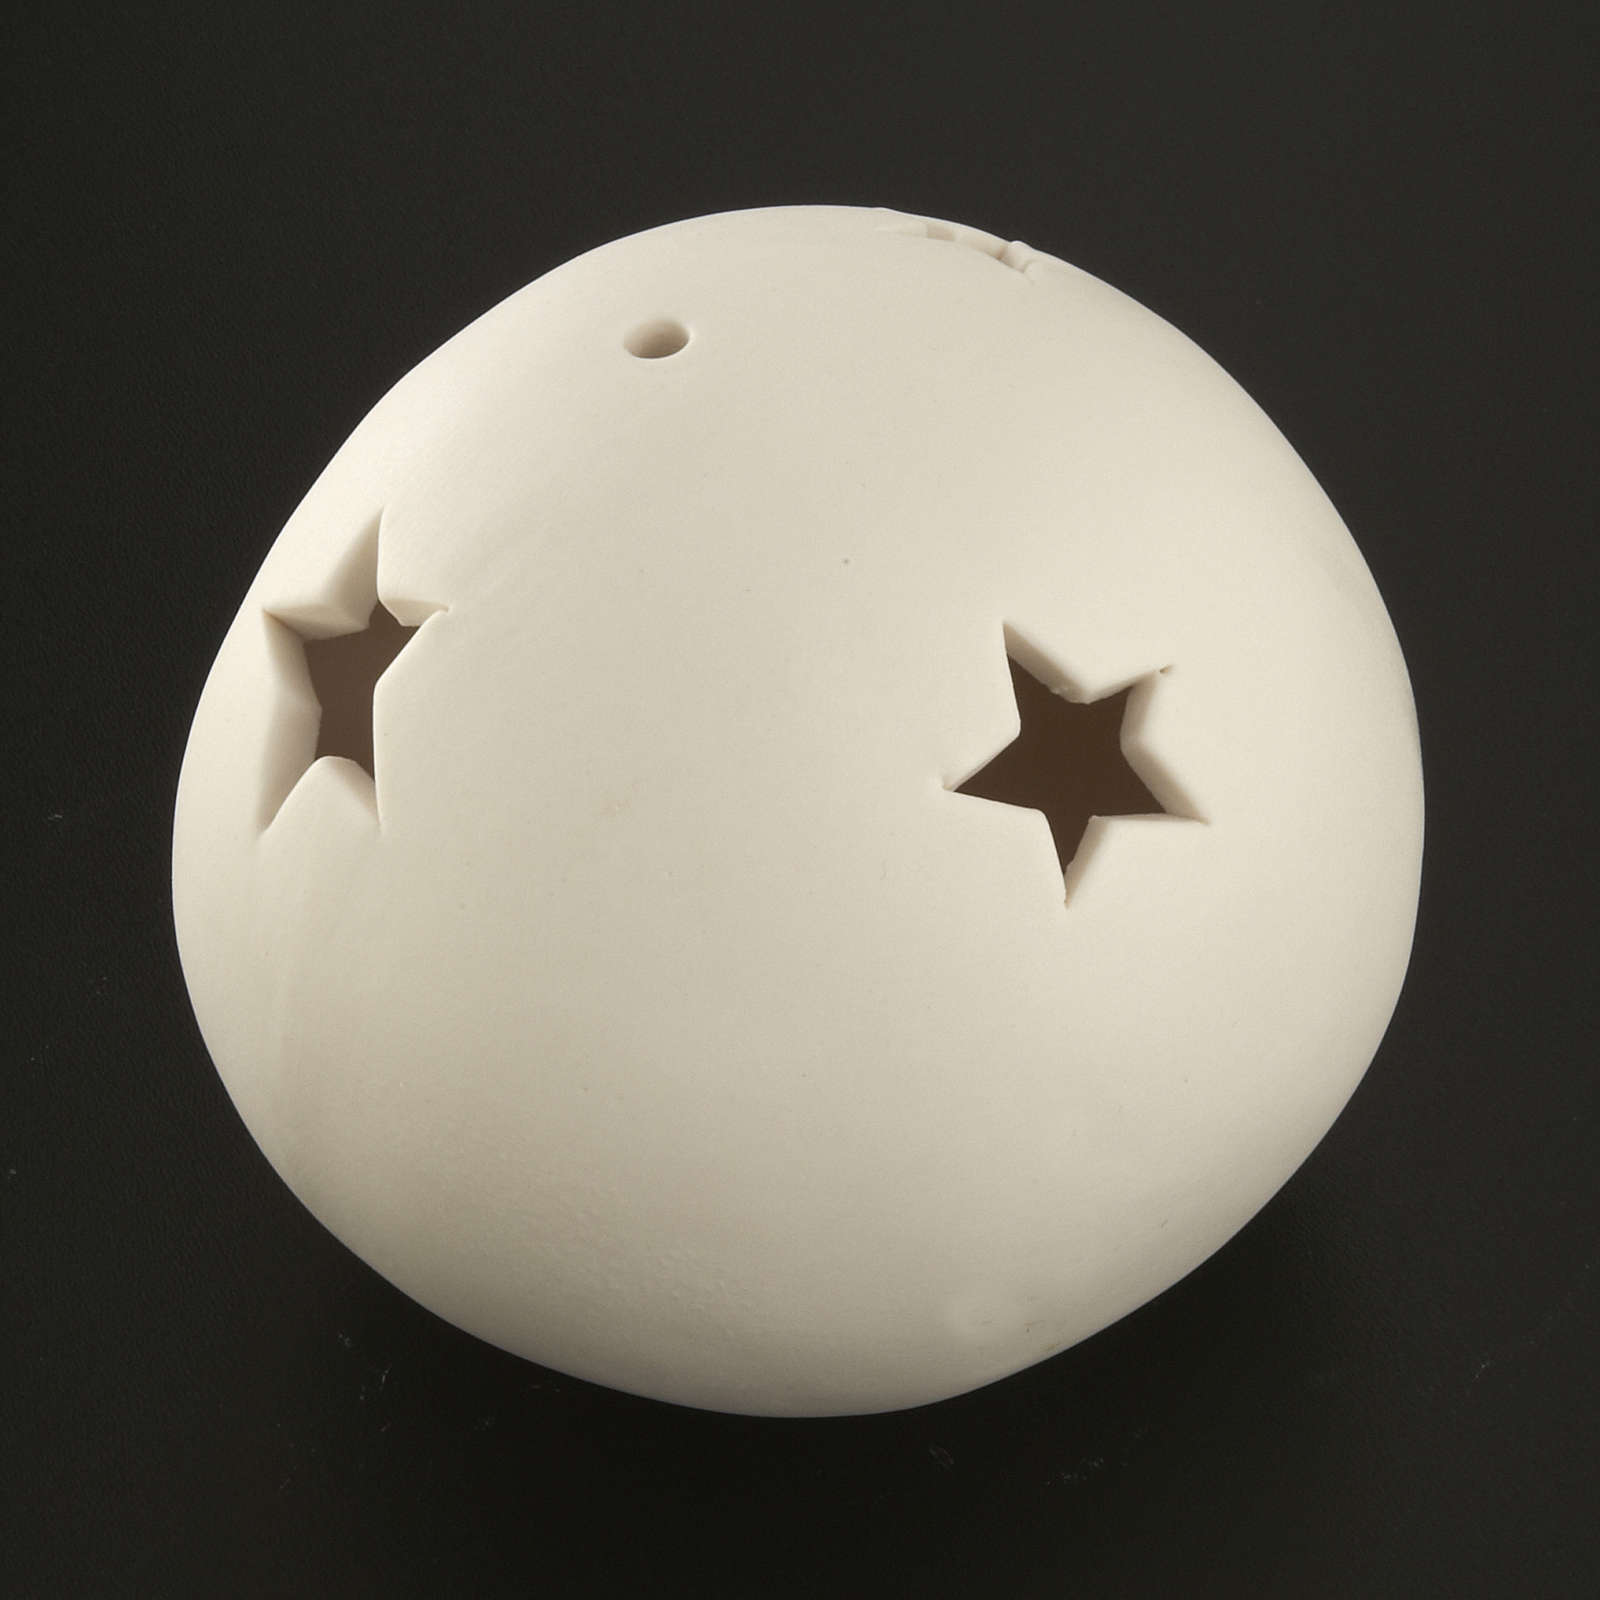 Sphere-shaped Nativity with led light 3